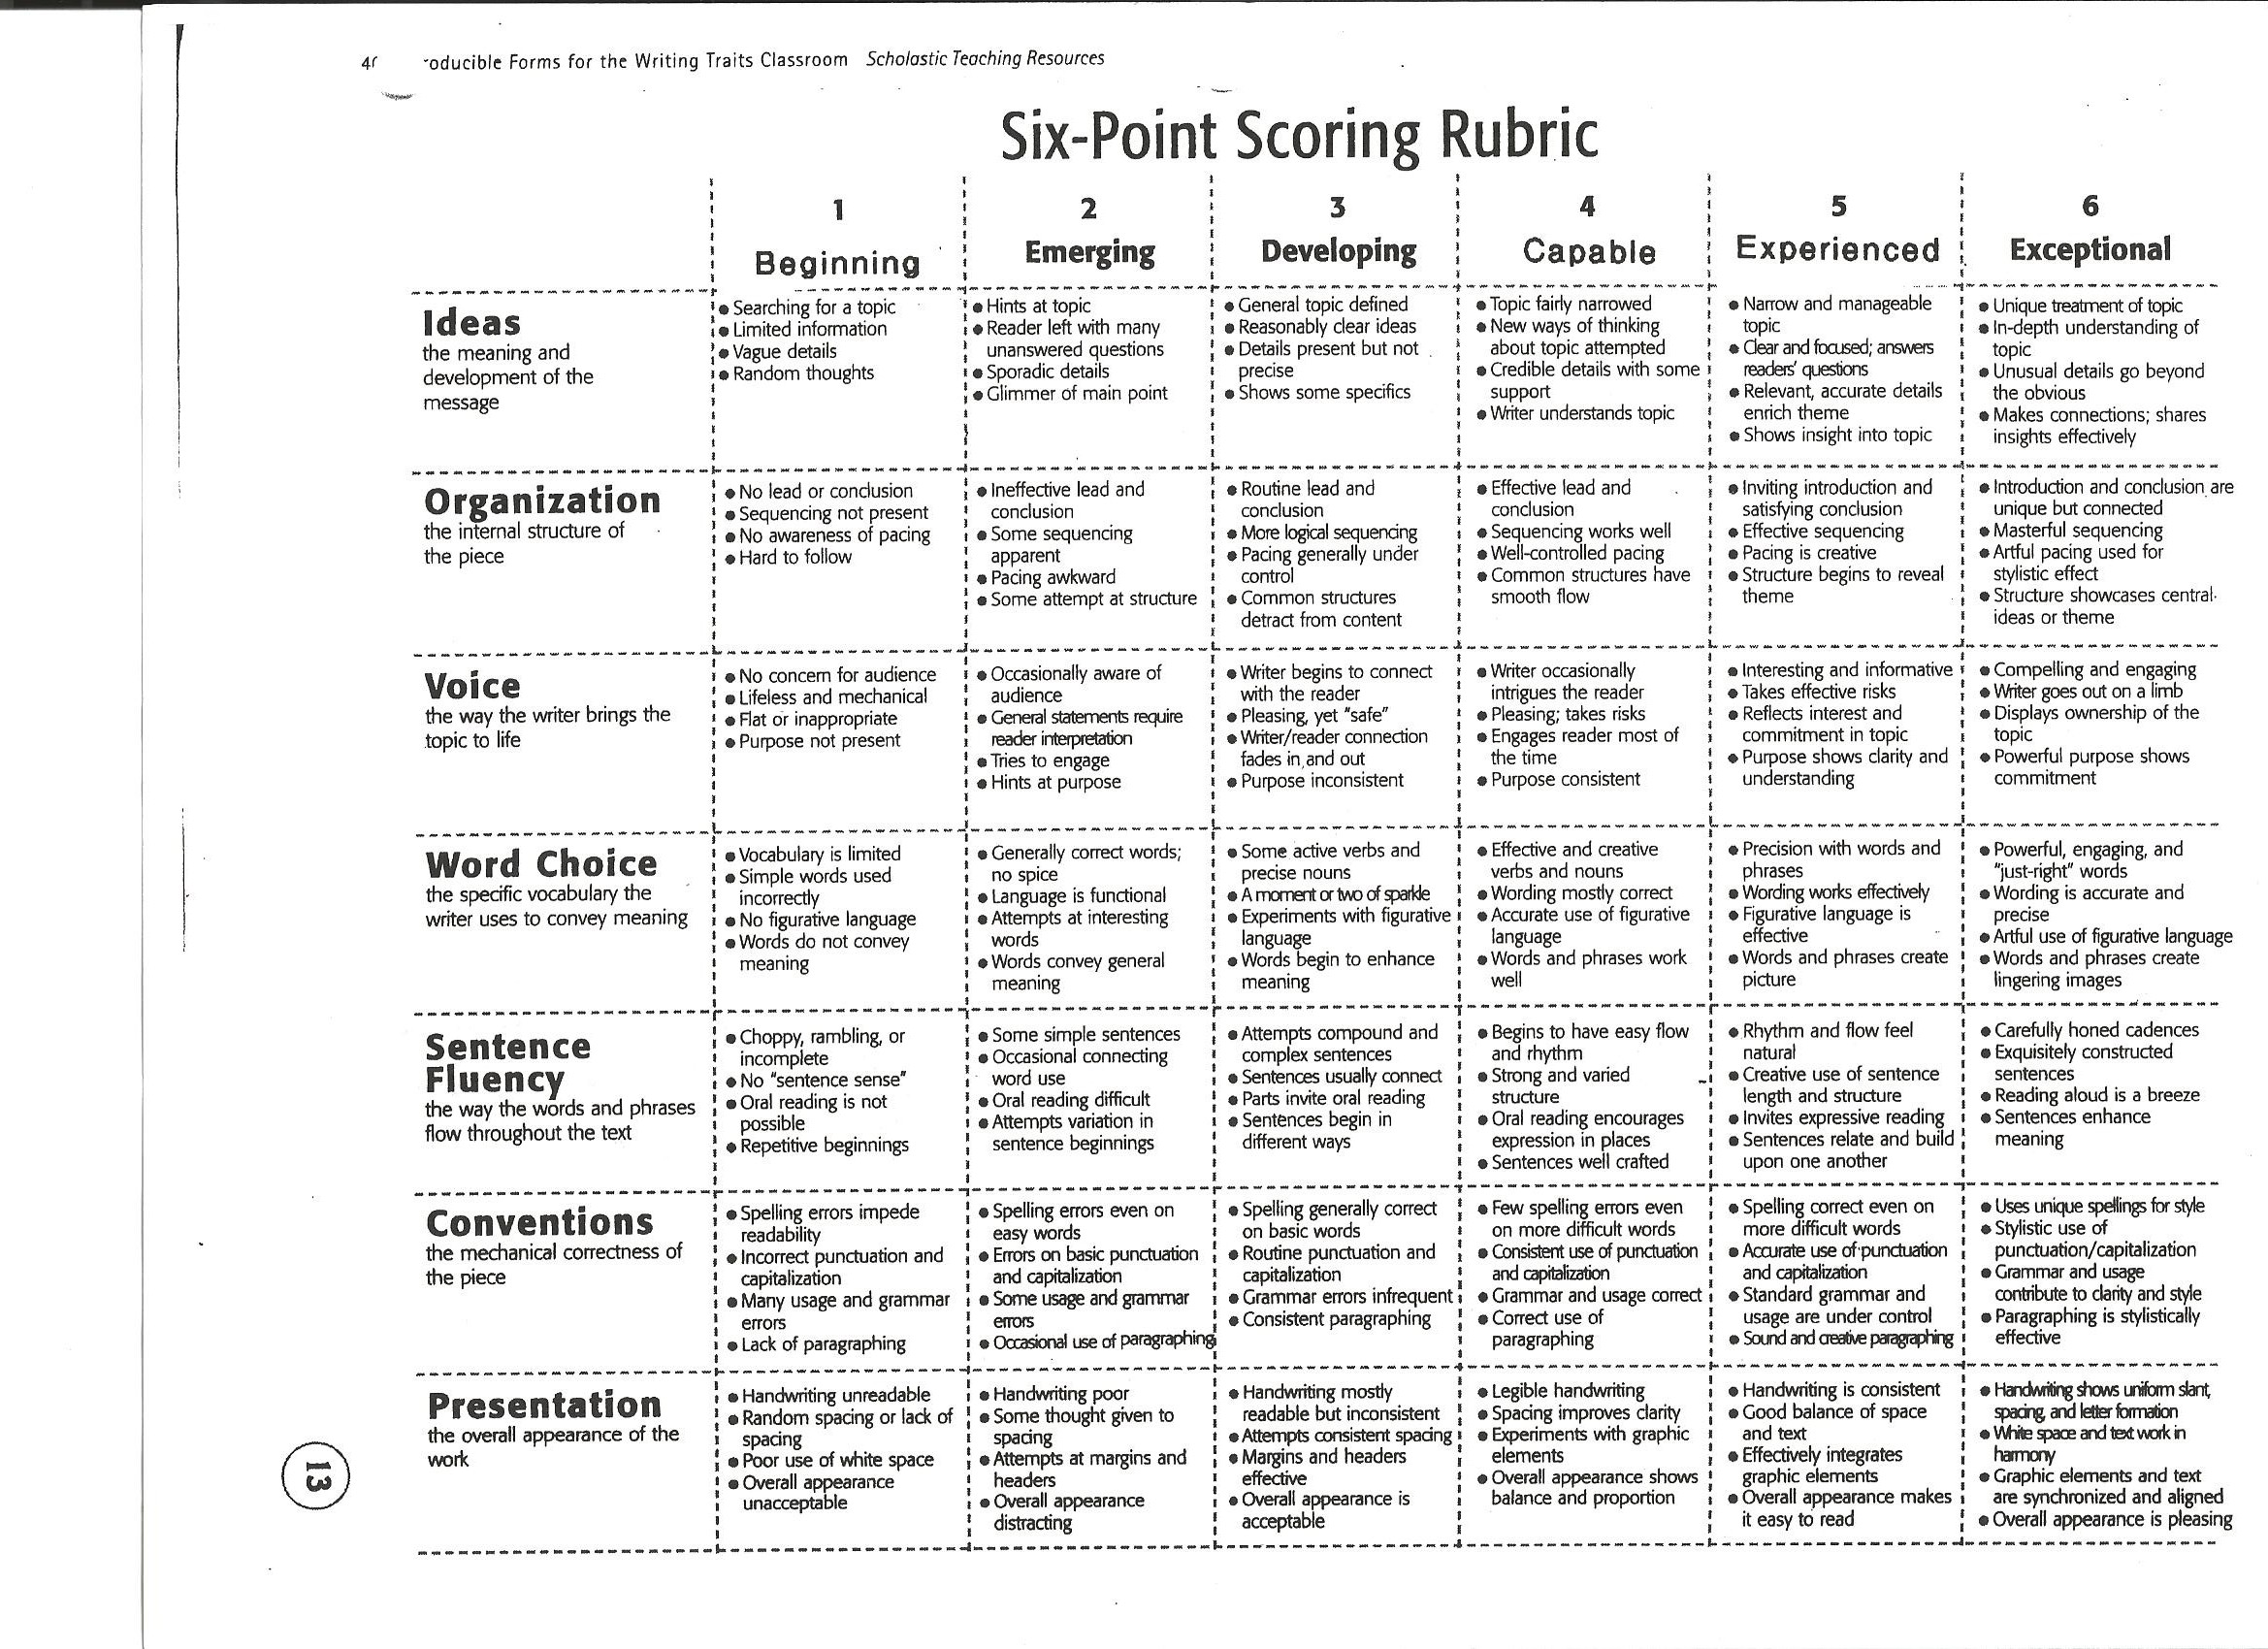 nj holistic scoring rubric for essay writing (nj ask) grade 6 criterion-based holistic scoring: a writing handbook  october  jersey's scoring rubric and student test data to improve classroom  instruction student  essays (persuasive prompt) are reported on a scale of 2 to  12.